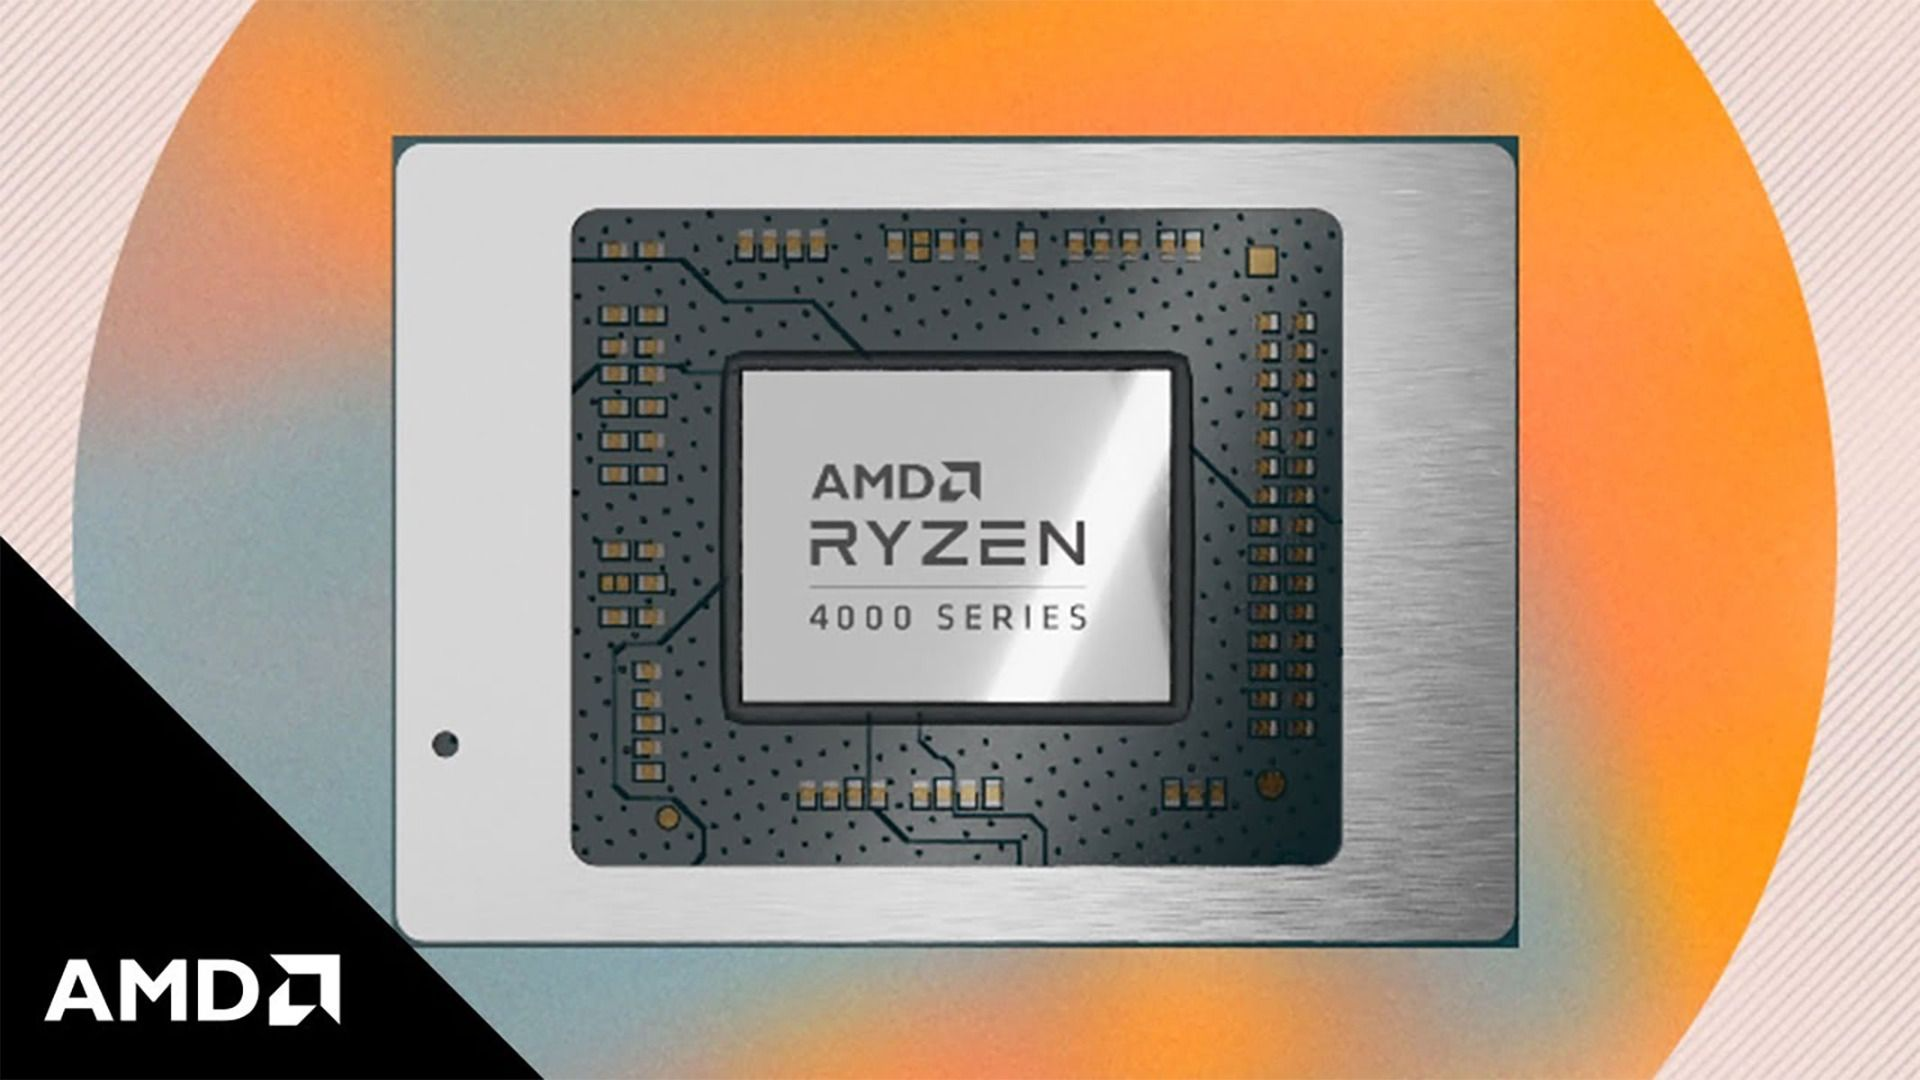 Amd Ryzen 4000 Laptops Tipped For March 16 Release Including 8 Core 16 Thread Ryzen 9 4900hs Beasts In 2020 Amd Laptop Processor Phablet